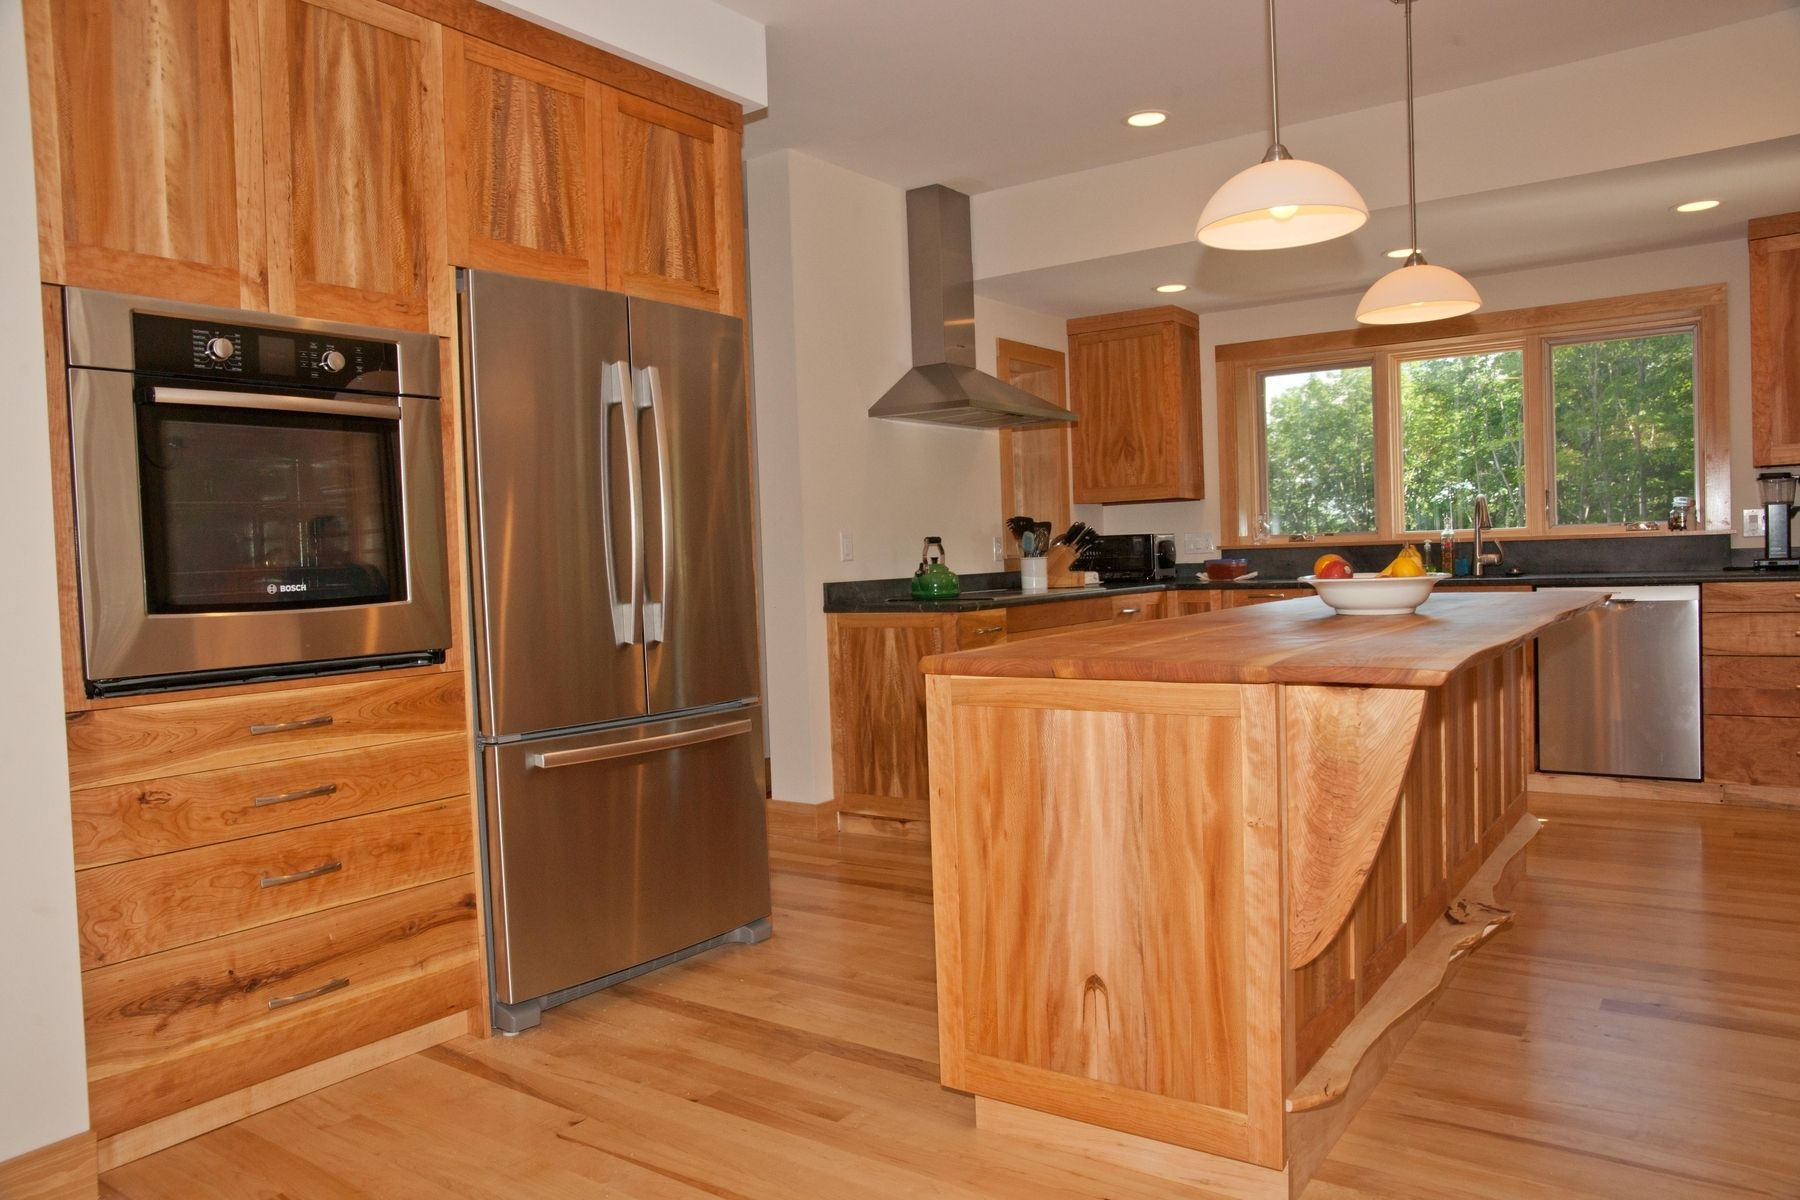 Best Kitchen Gallery: Handmade Cherry American Lacewood And Maple Kitchen Cabi S By of Tiger Maple Kitchen Cabinets on cal-ite.com